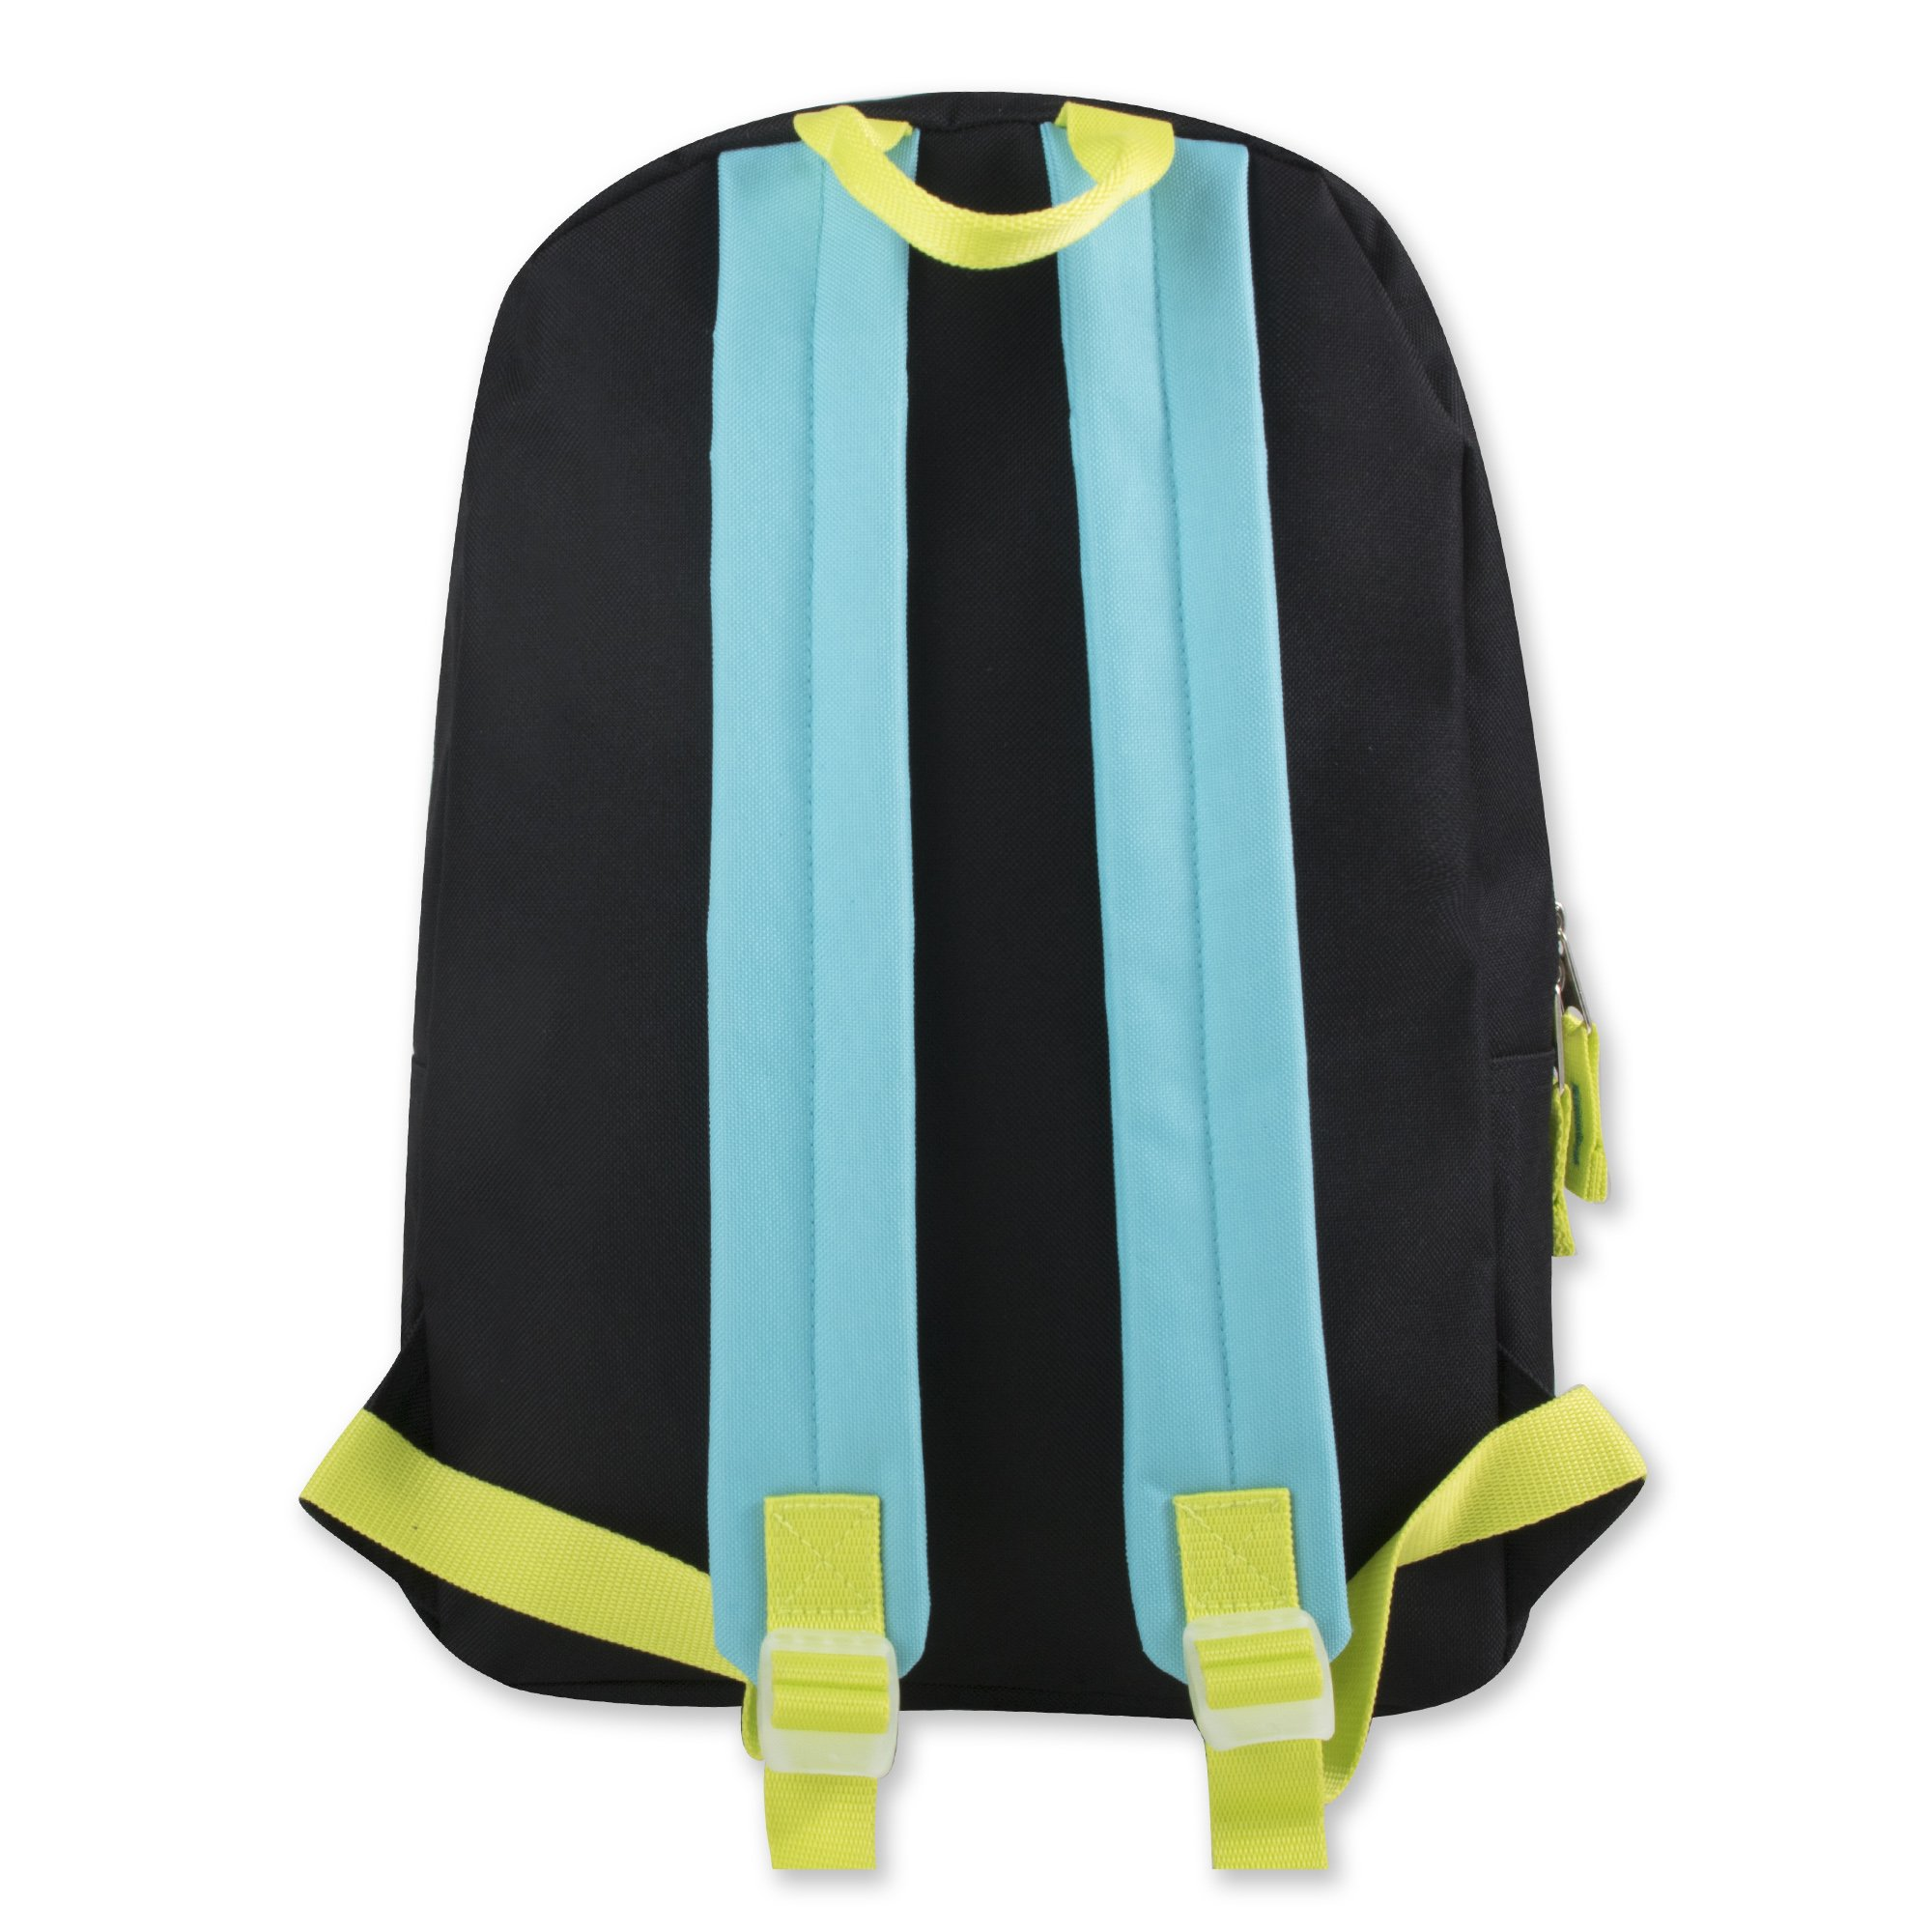 Trail maker Character Backpack (15'') with Fun Fashionable Design for Boys & Girls (Emoji Boy) by Trail maker (Image #4)